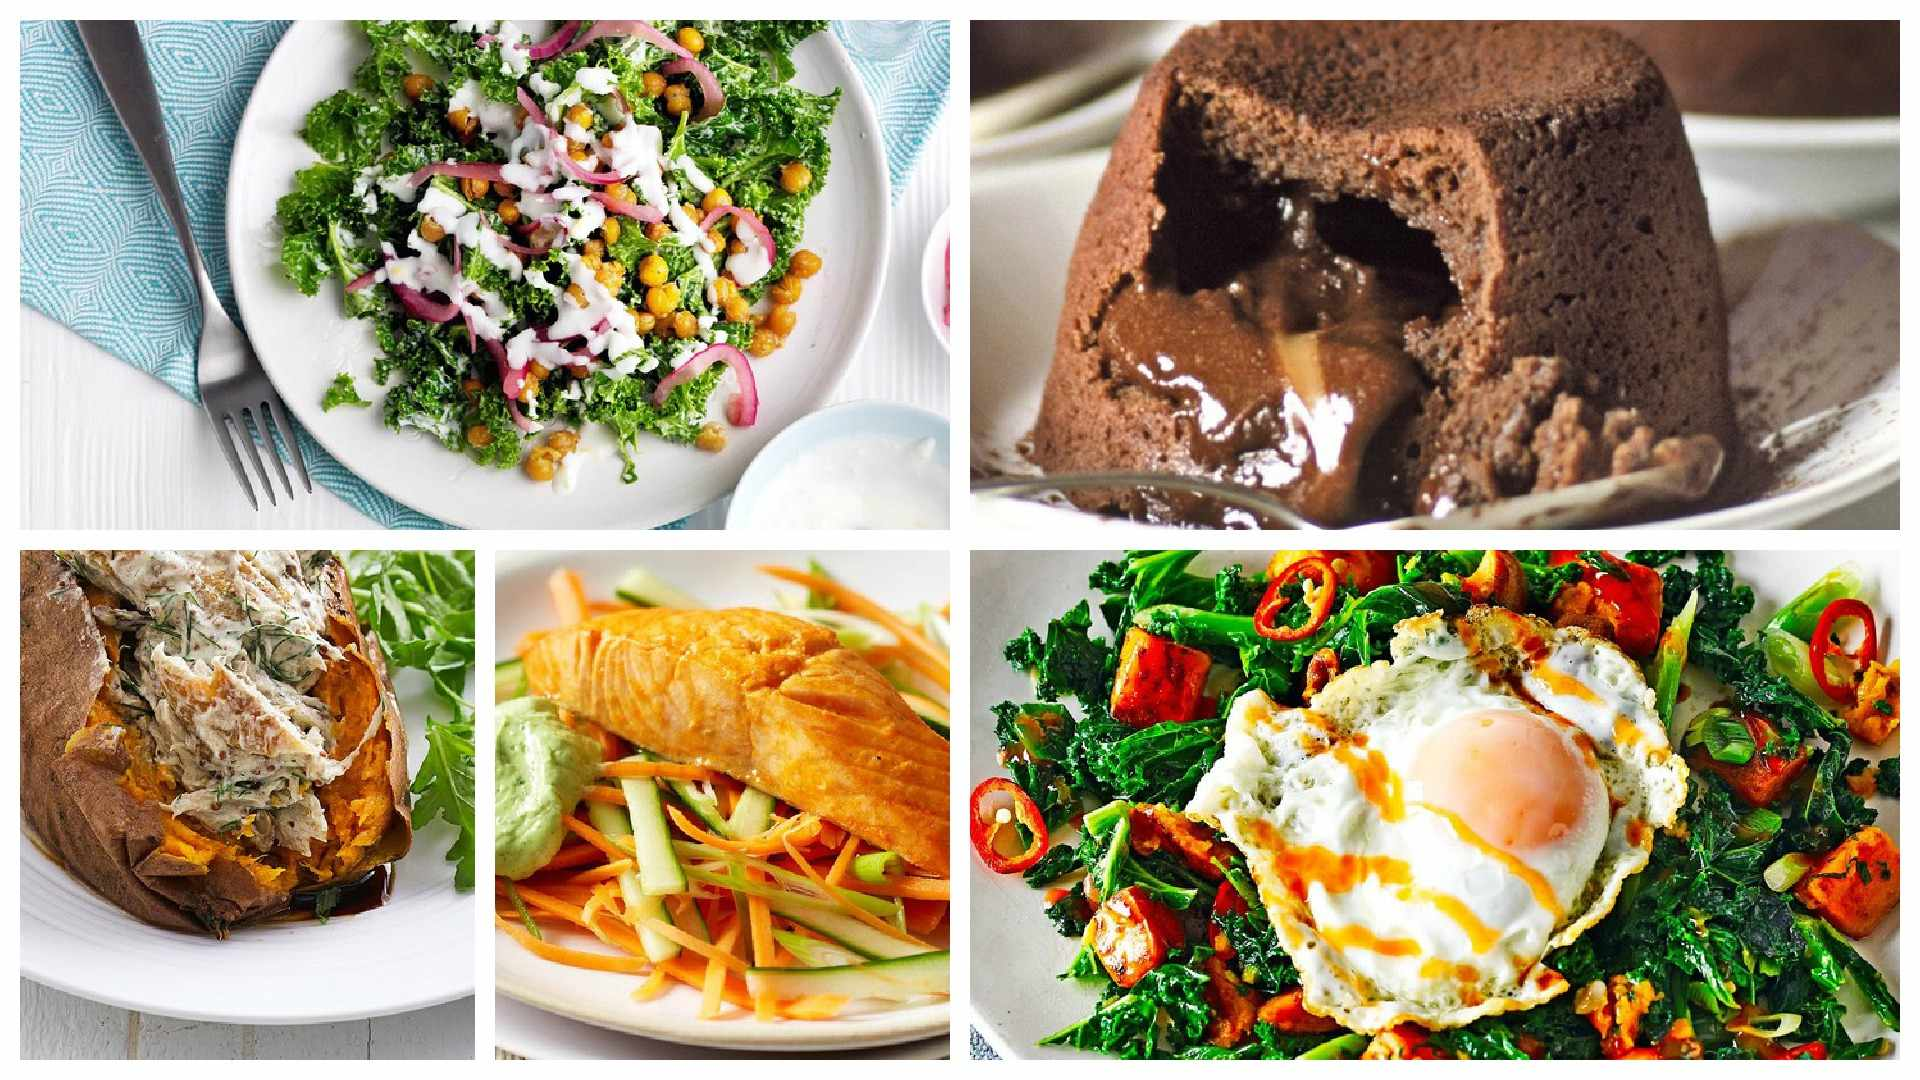 Boost your mood with some tasty and healthy comfort food